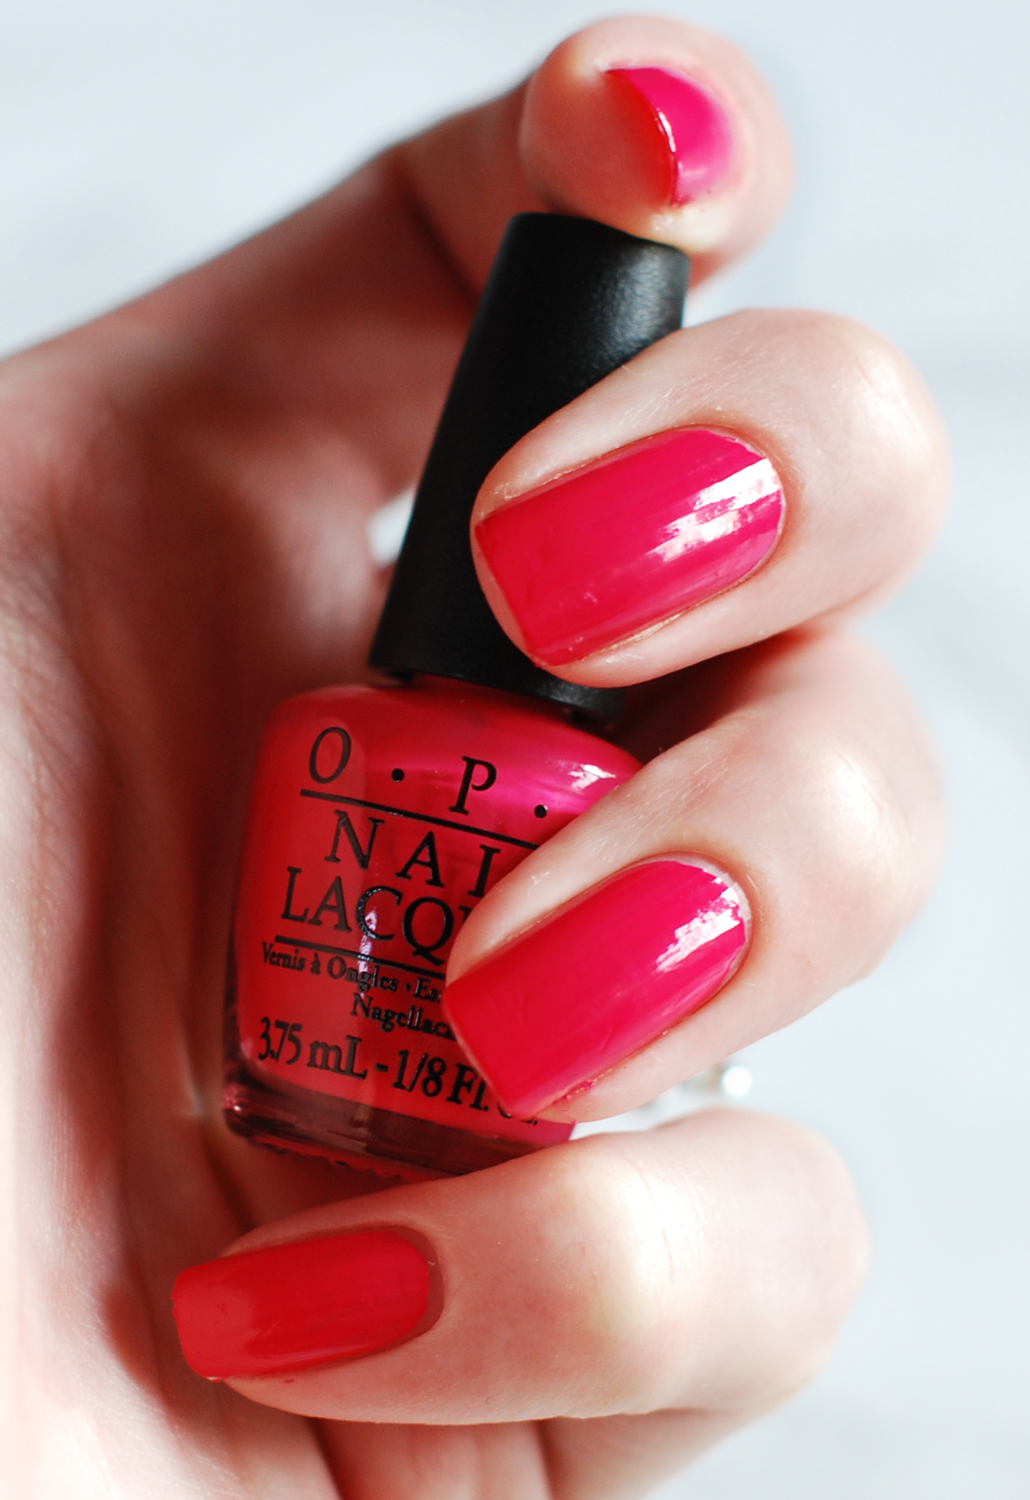 OPI Passport To Color Travel Exclusive review Charged Up Cherry